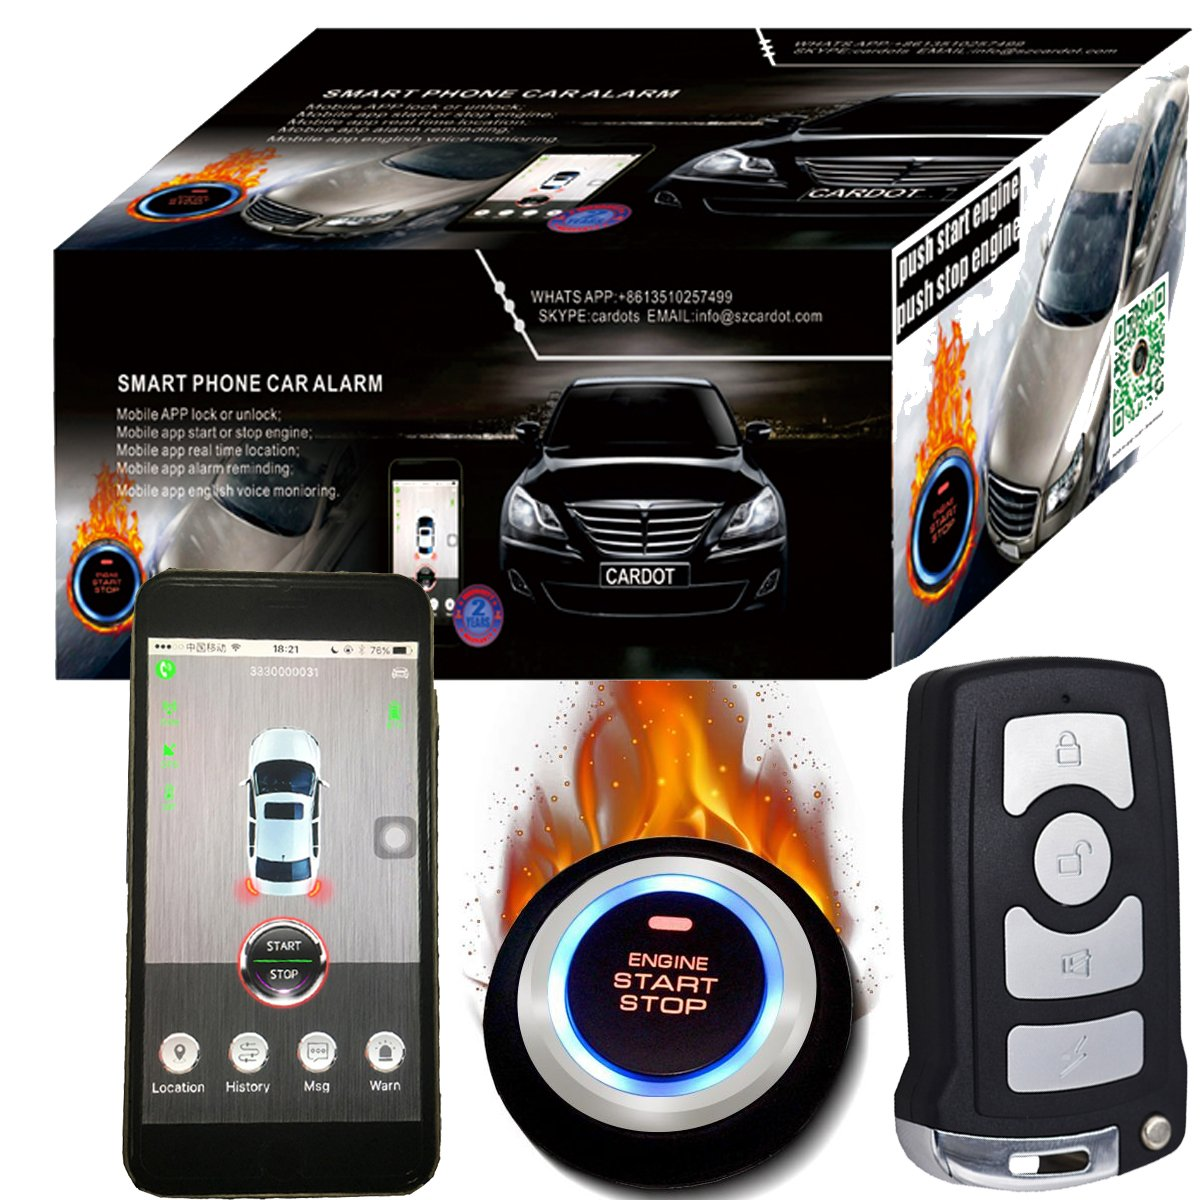 Smartphone Gsm&Gps Car Alarm Compatible With IOS And Andriod Phone Auto Central Lock Car Engine Start Stop